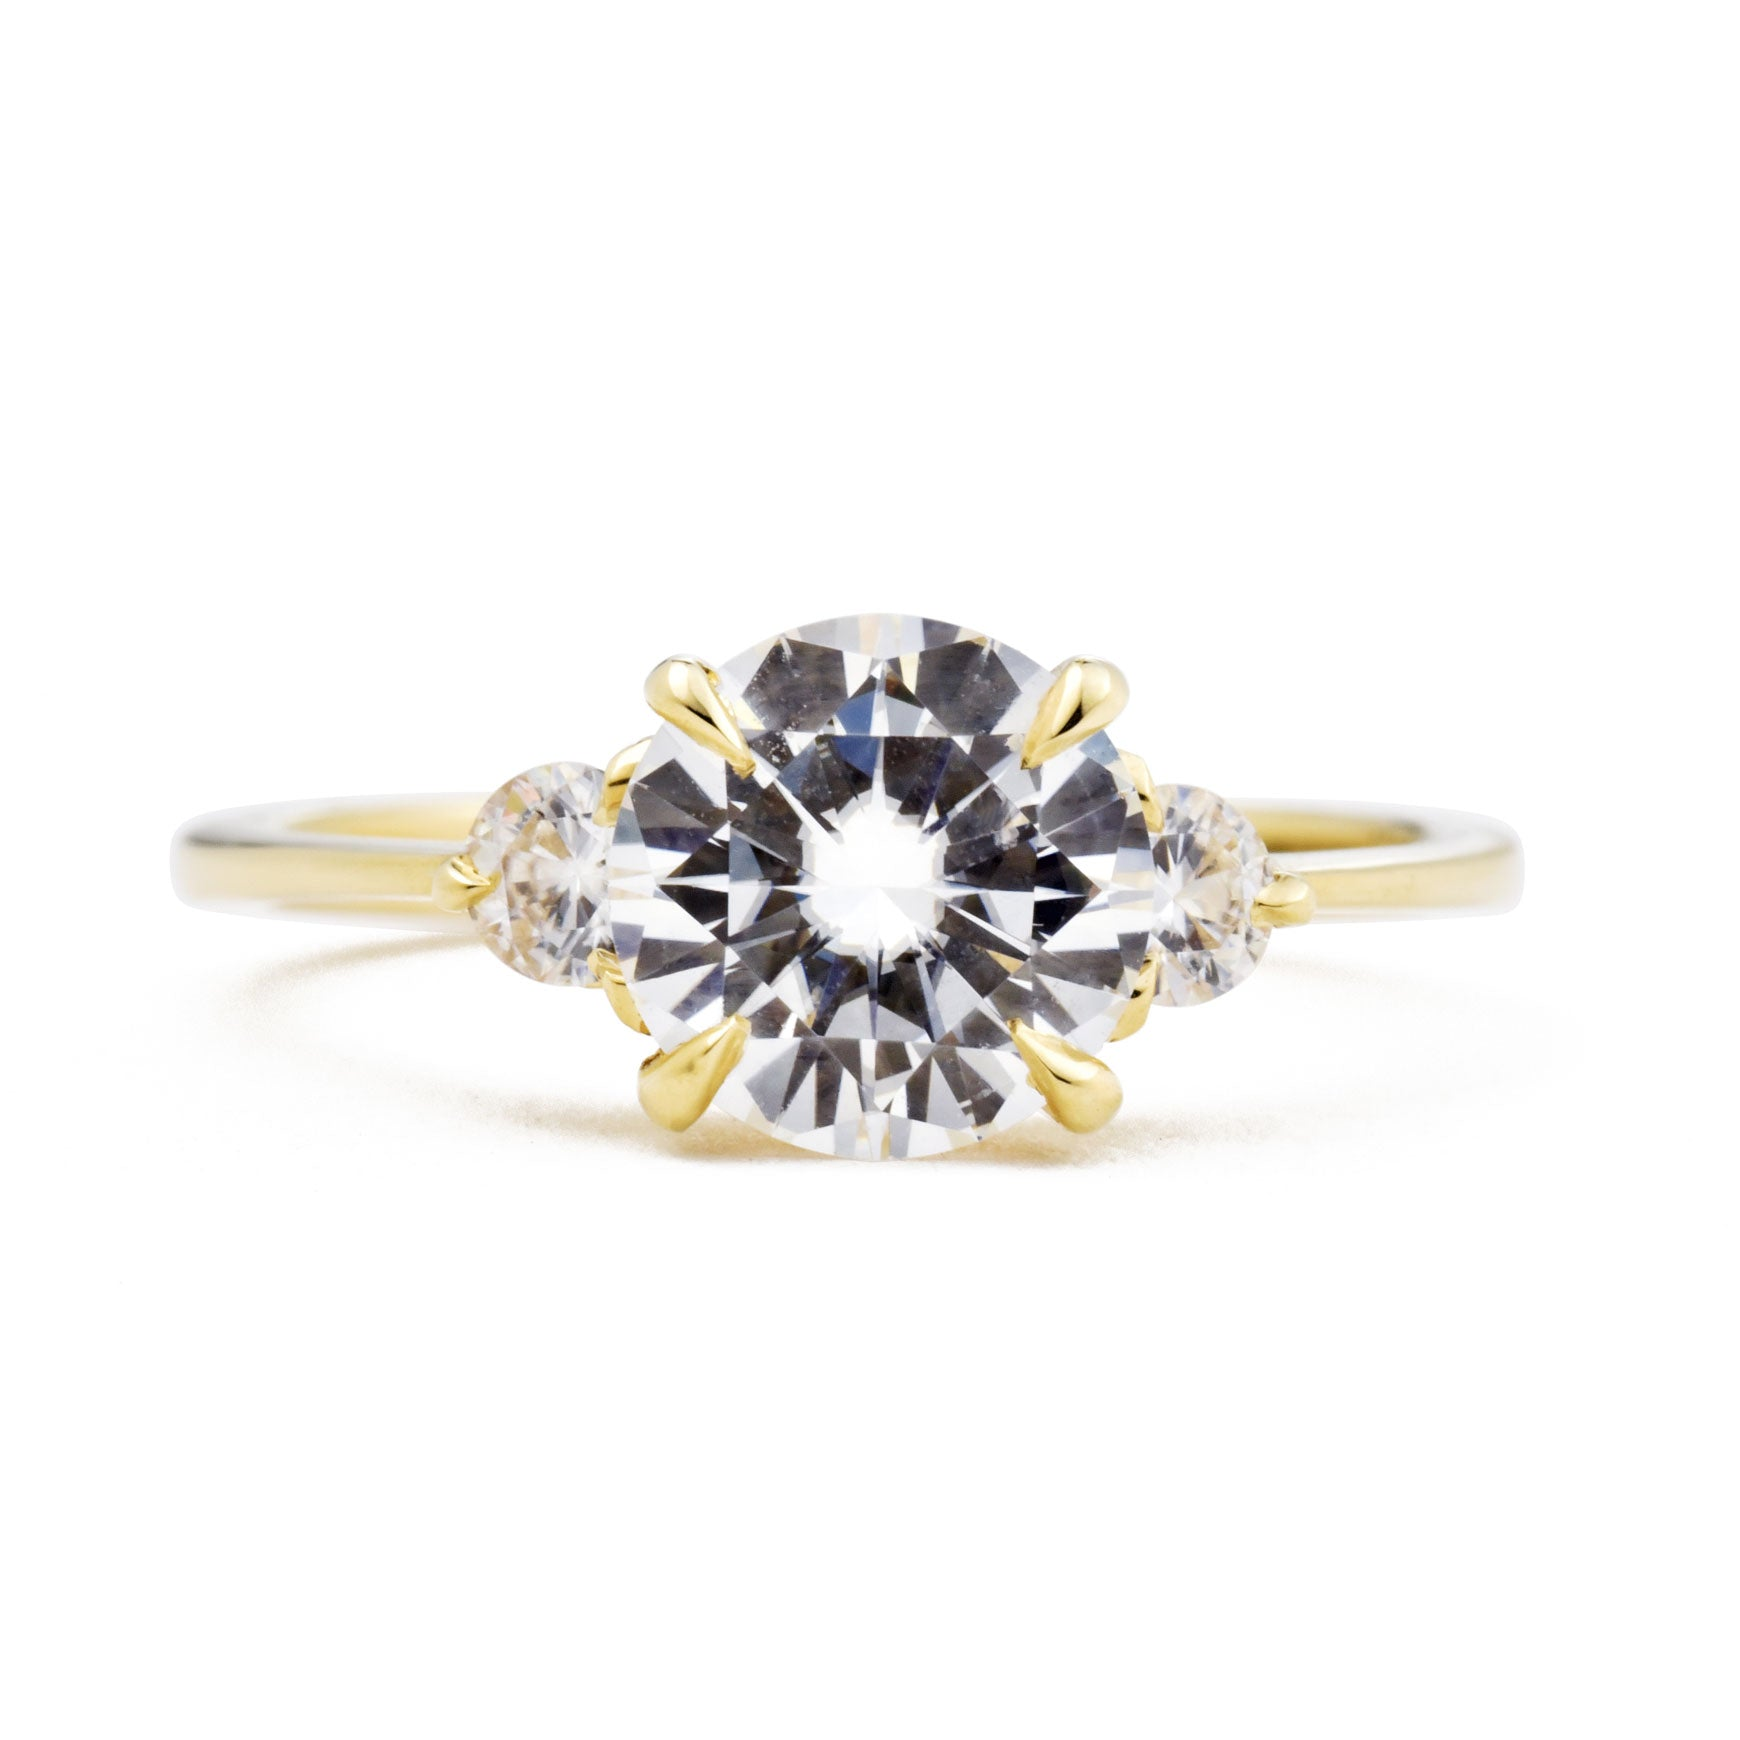 Zara Round Three Stone Moissanite Engagement Ring